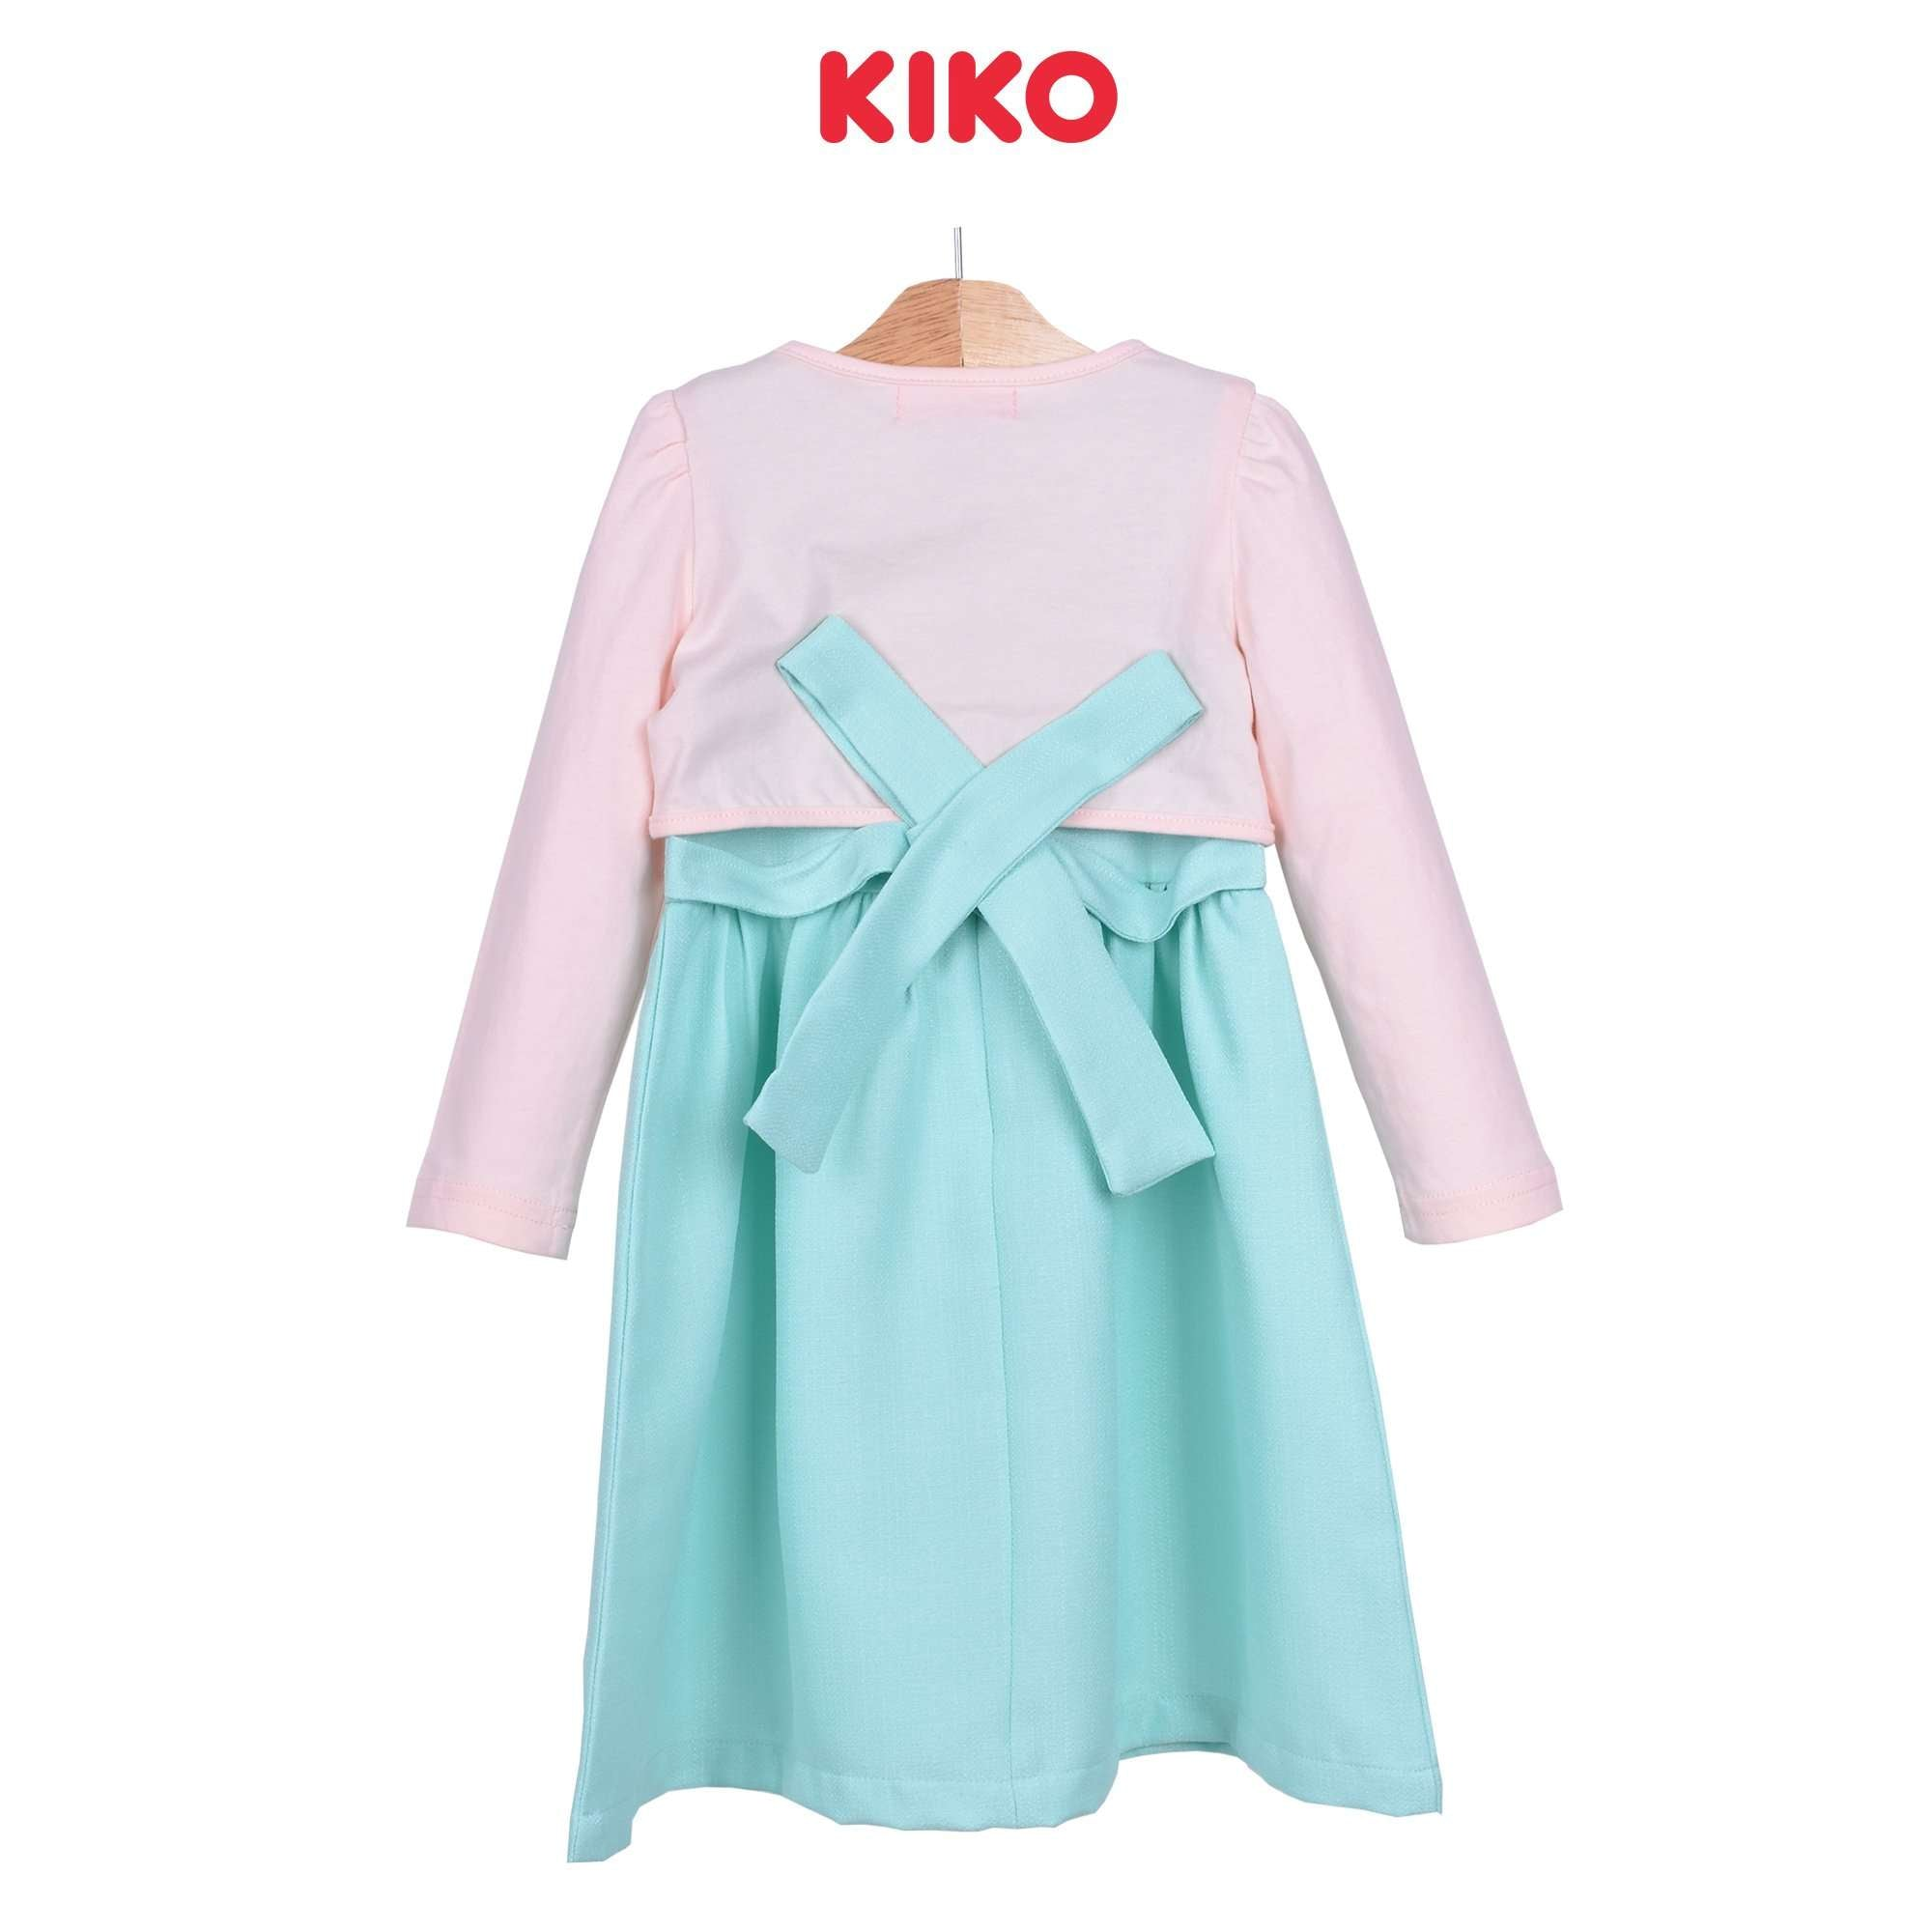 KIKO Girl Dress With Cardigan - Light Green 115069-322 : Buy KIKO online at CMG.MY